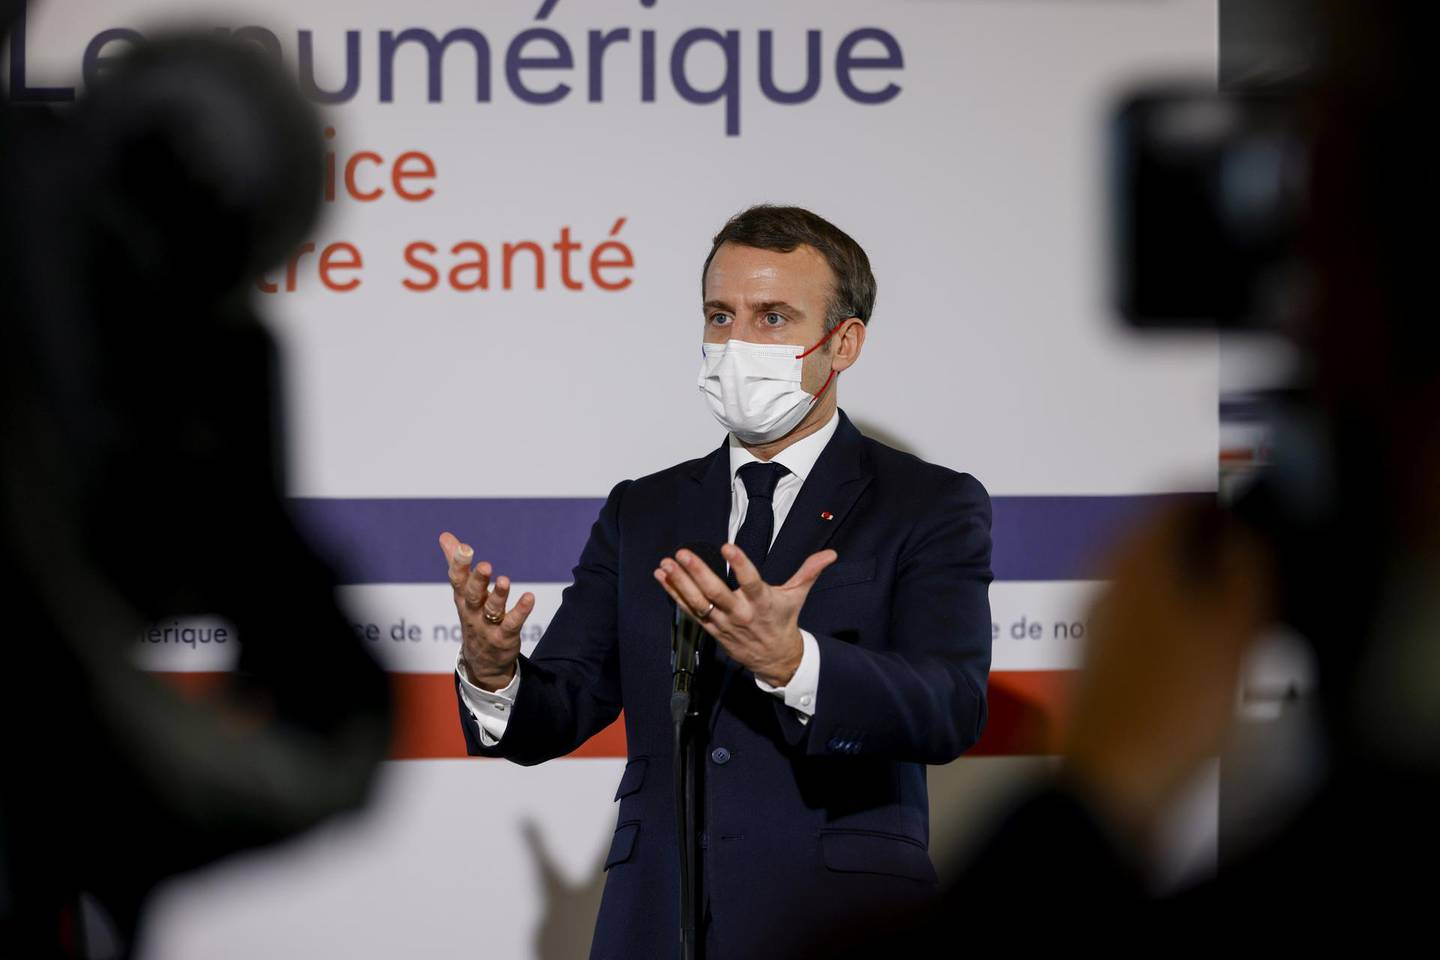 French President Emmanuel Macron, wearing a face mask, gestures as he gives a speech about health research during a visit of the Necker Hospital in Paris, France December 4, 2020. Thomas Samson/Pool via REUTERS